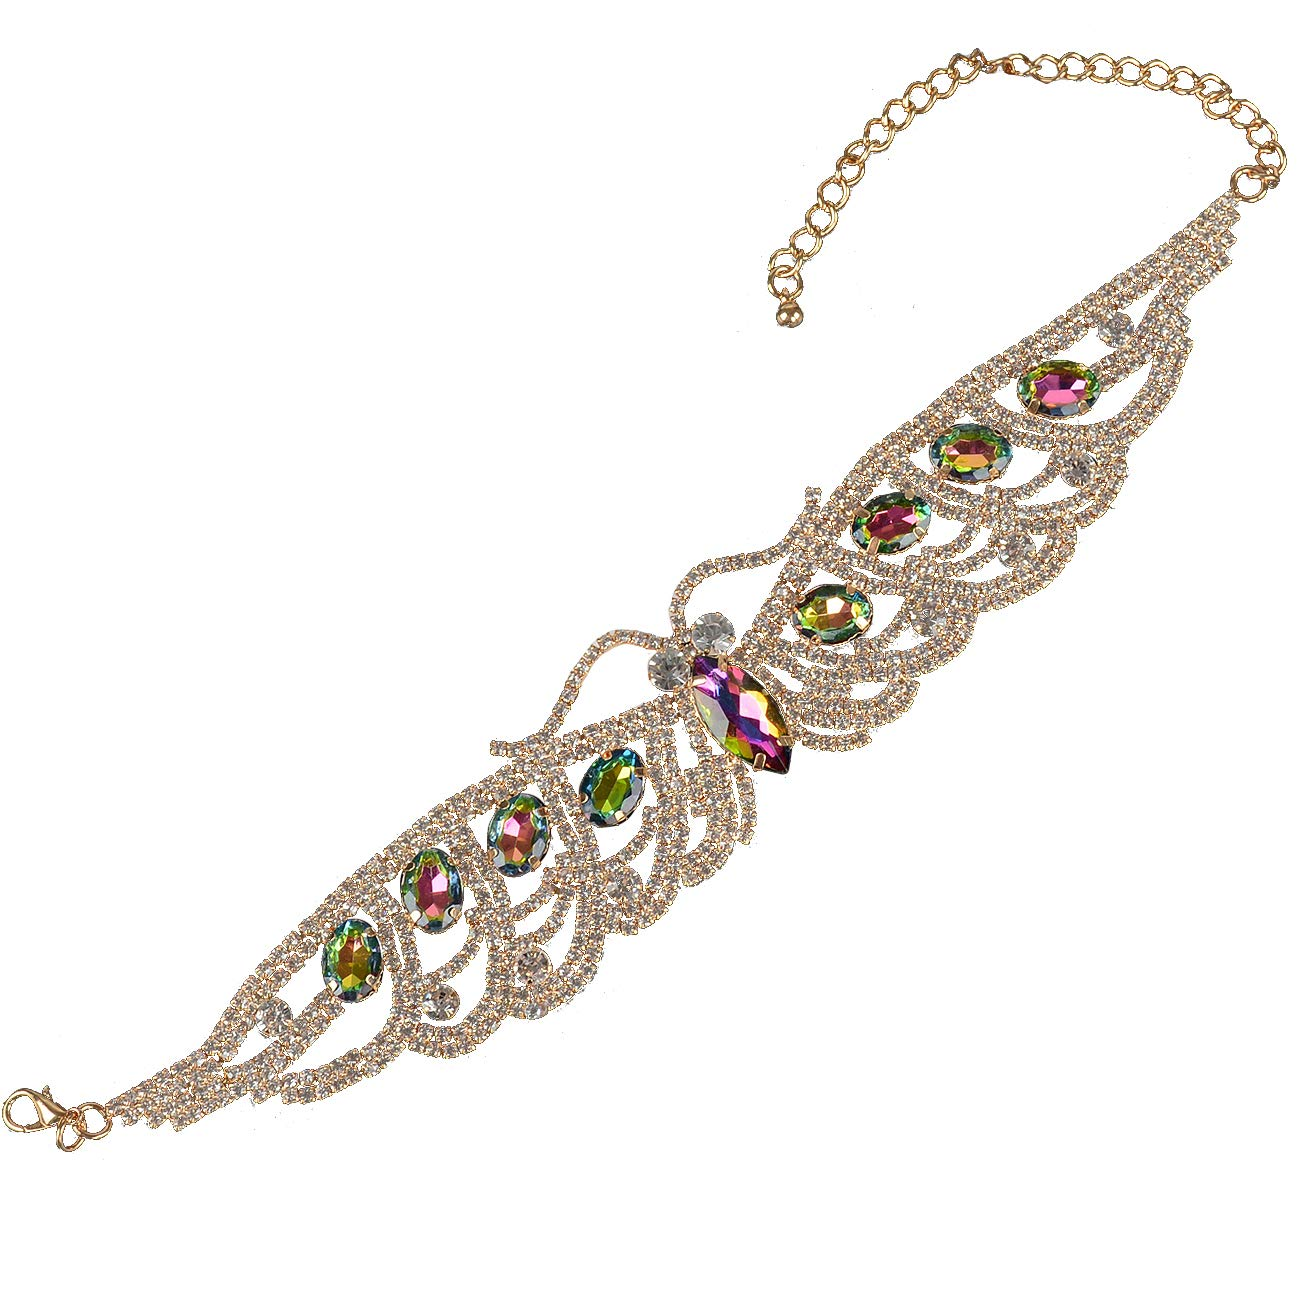 60c2bb636 Amazon.com: Holylove Novelty Choker Necklace for Women Costume Jewelry  Formal Party Daily Accessory Crystal Rhinestone Gold Chain 1pc with Gift  Box - N51 ...